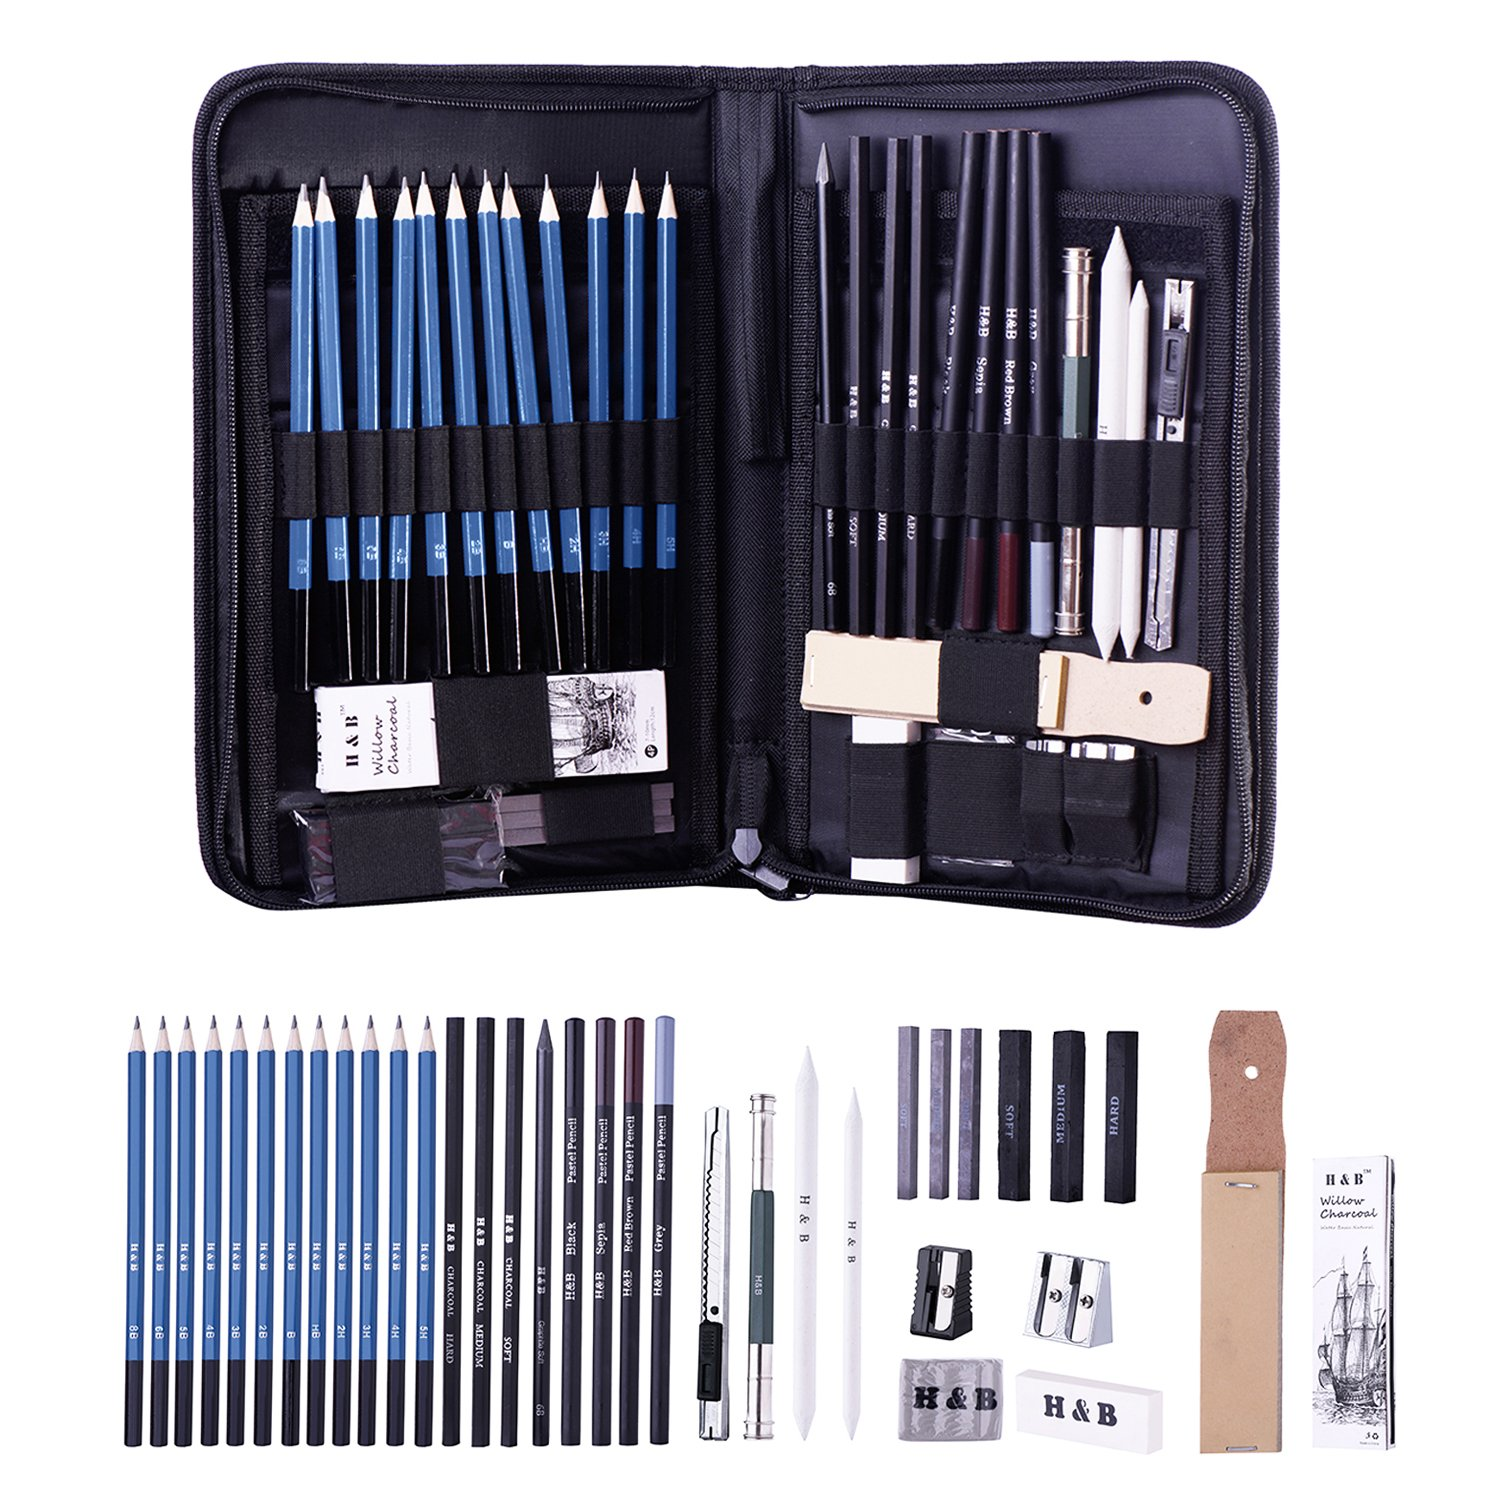 H&B Sketching Pencils Set Drawing and Sketch Kit 32-Piece Set with Pencils, Erasers, Graphite Stick, Sandpaper Block, Pencil Sharpener